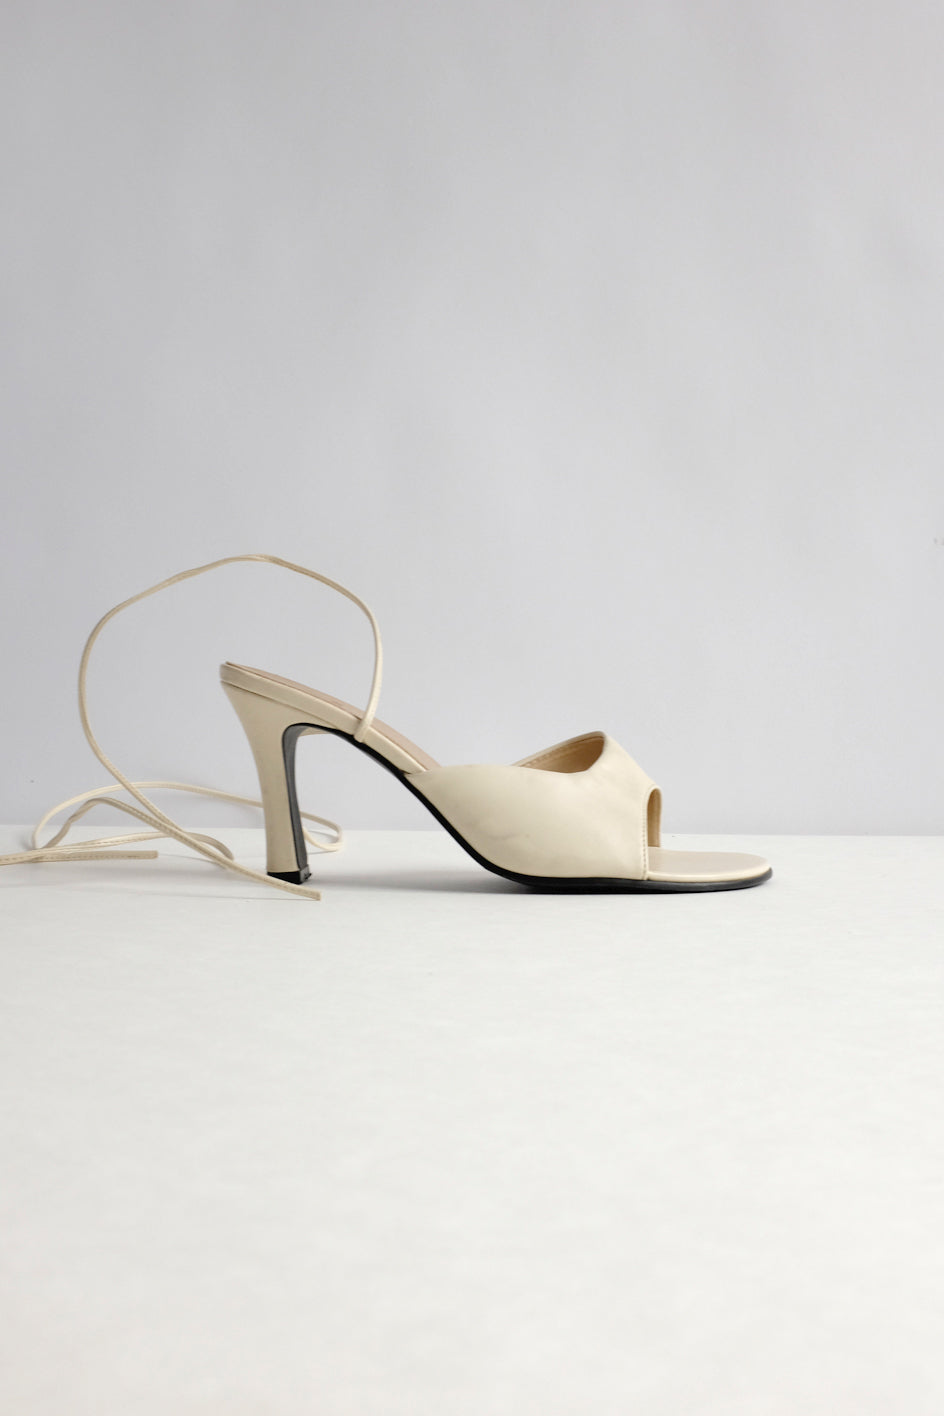 0015_VINTAGE CREAM STRAPPY LACE UP HEELED MULES 38